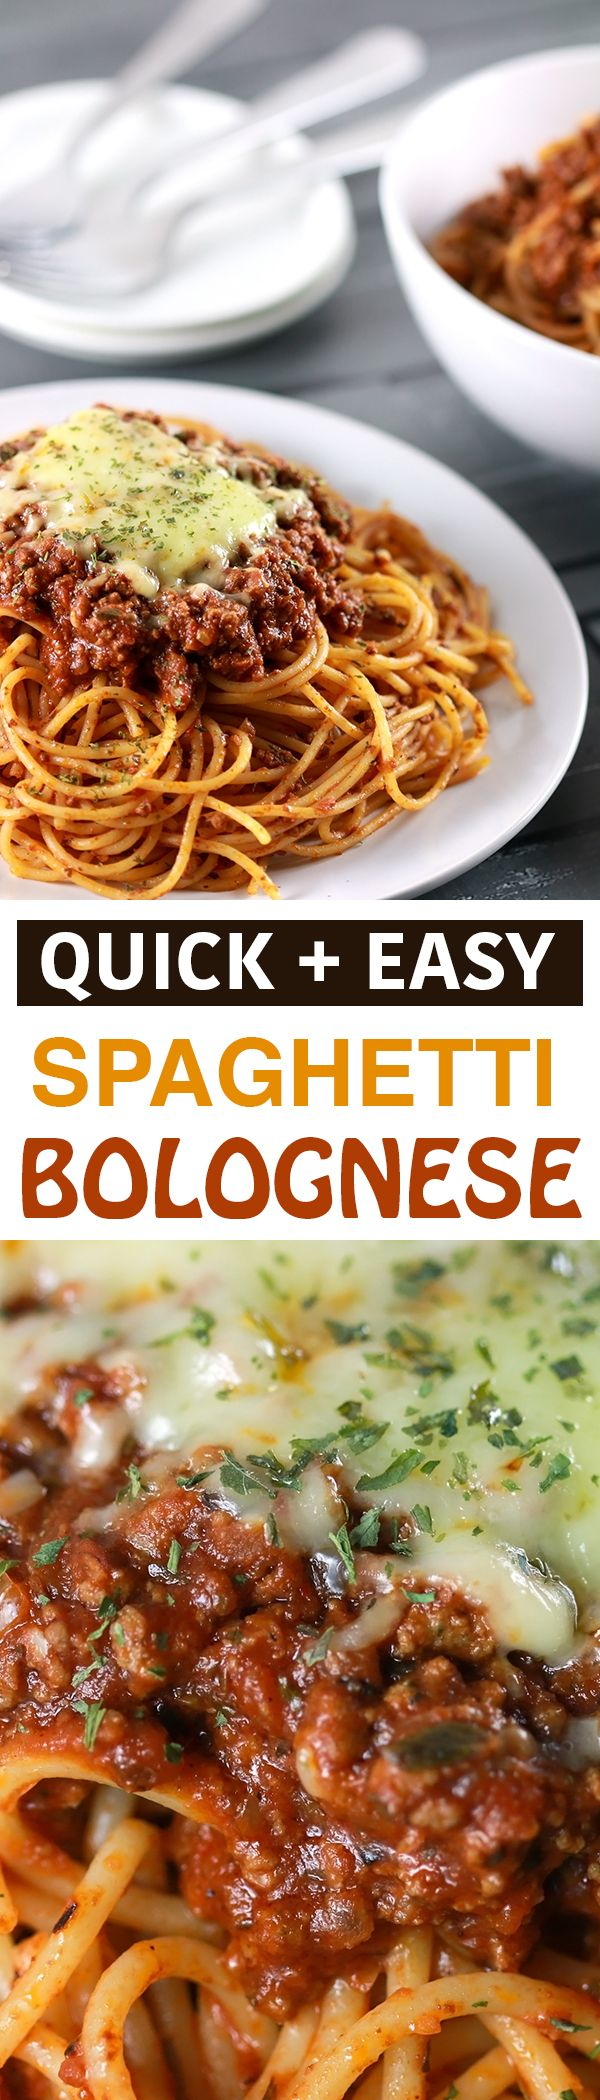 If there is one recipe for Spaghetti Bolognese that you need to know, this is it! You'll be amazed that this simple recipe can create such a tasty pasta! | ScrambledChefs.com